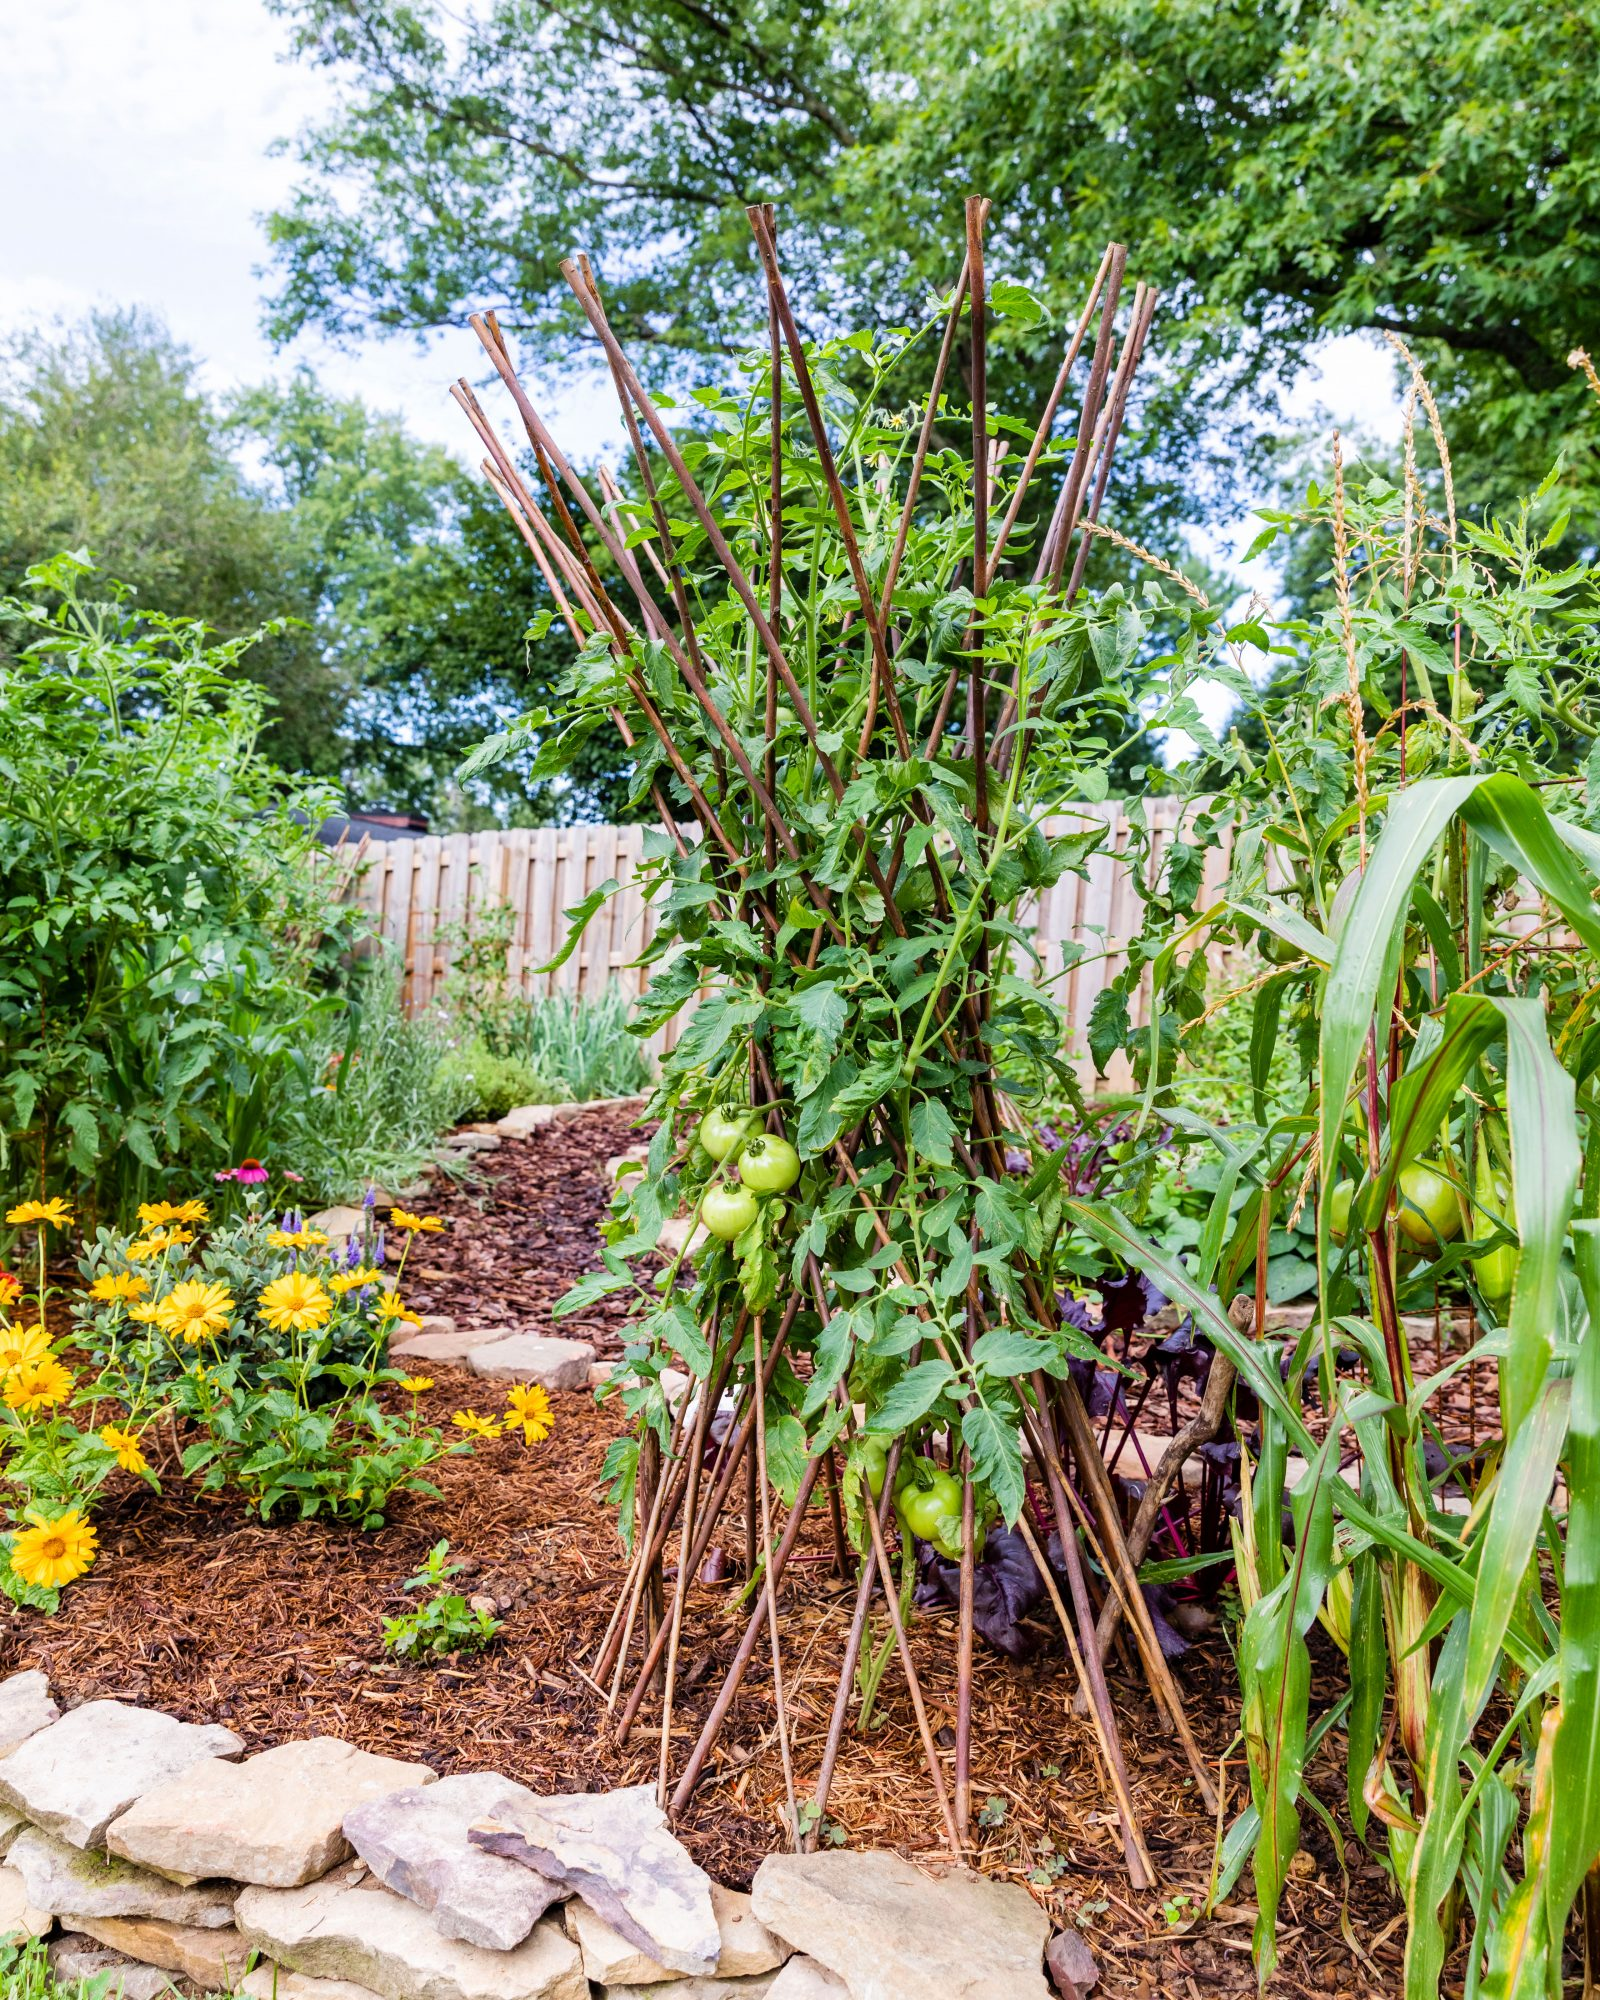 Tomato Trellises and flowers in vegetable garden